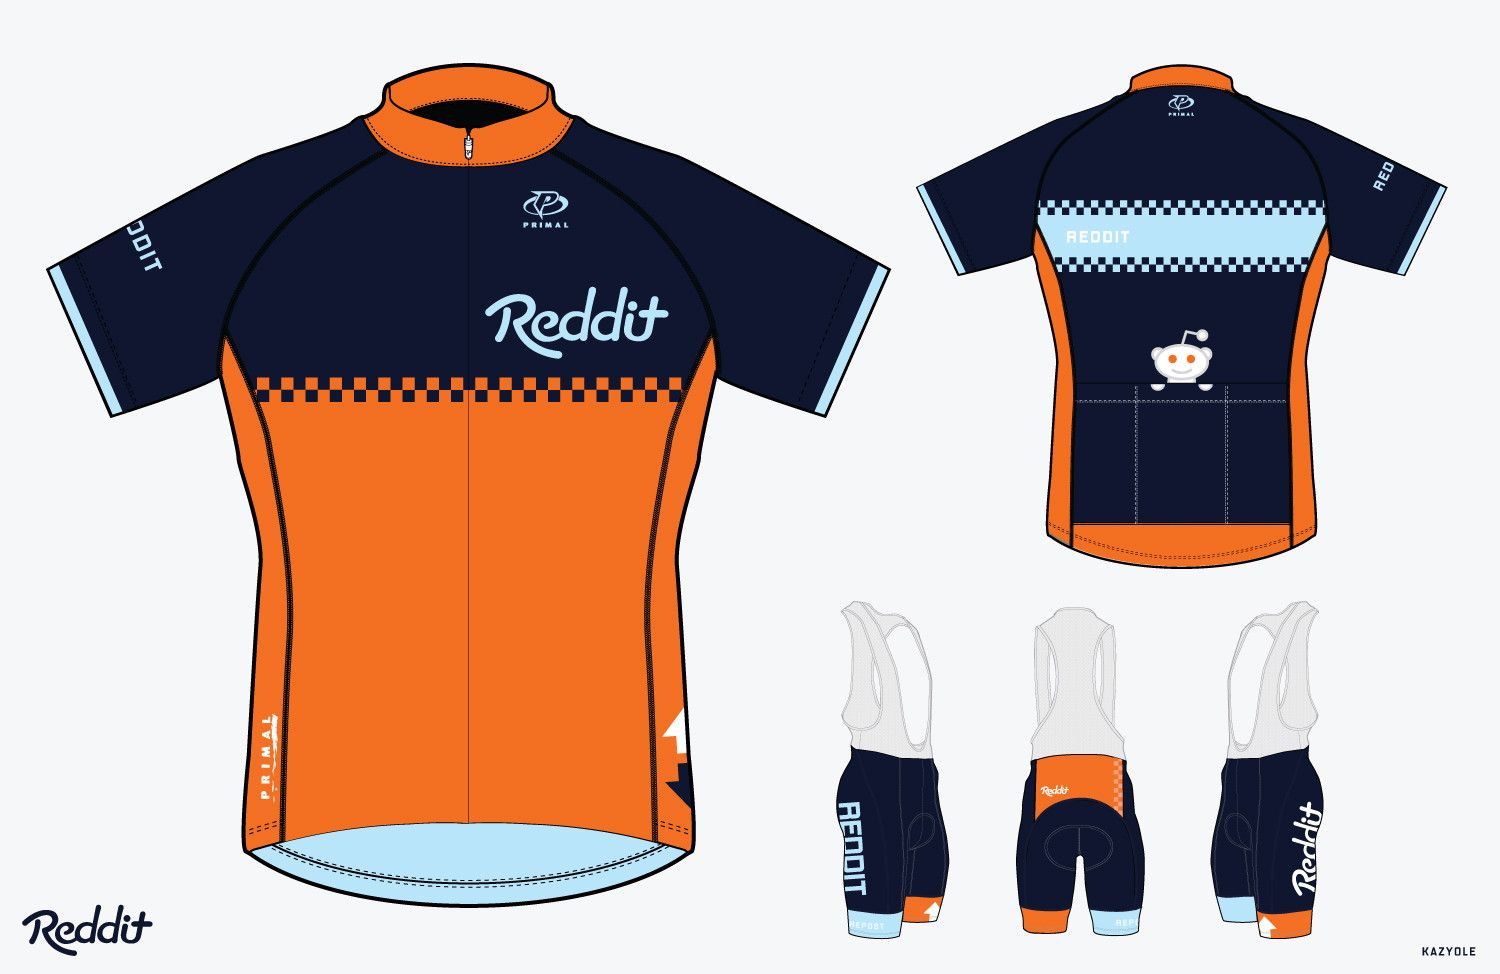 Template Clothing Cycling Google Search Jersey Design Cycling